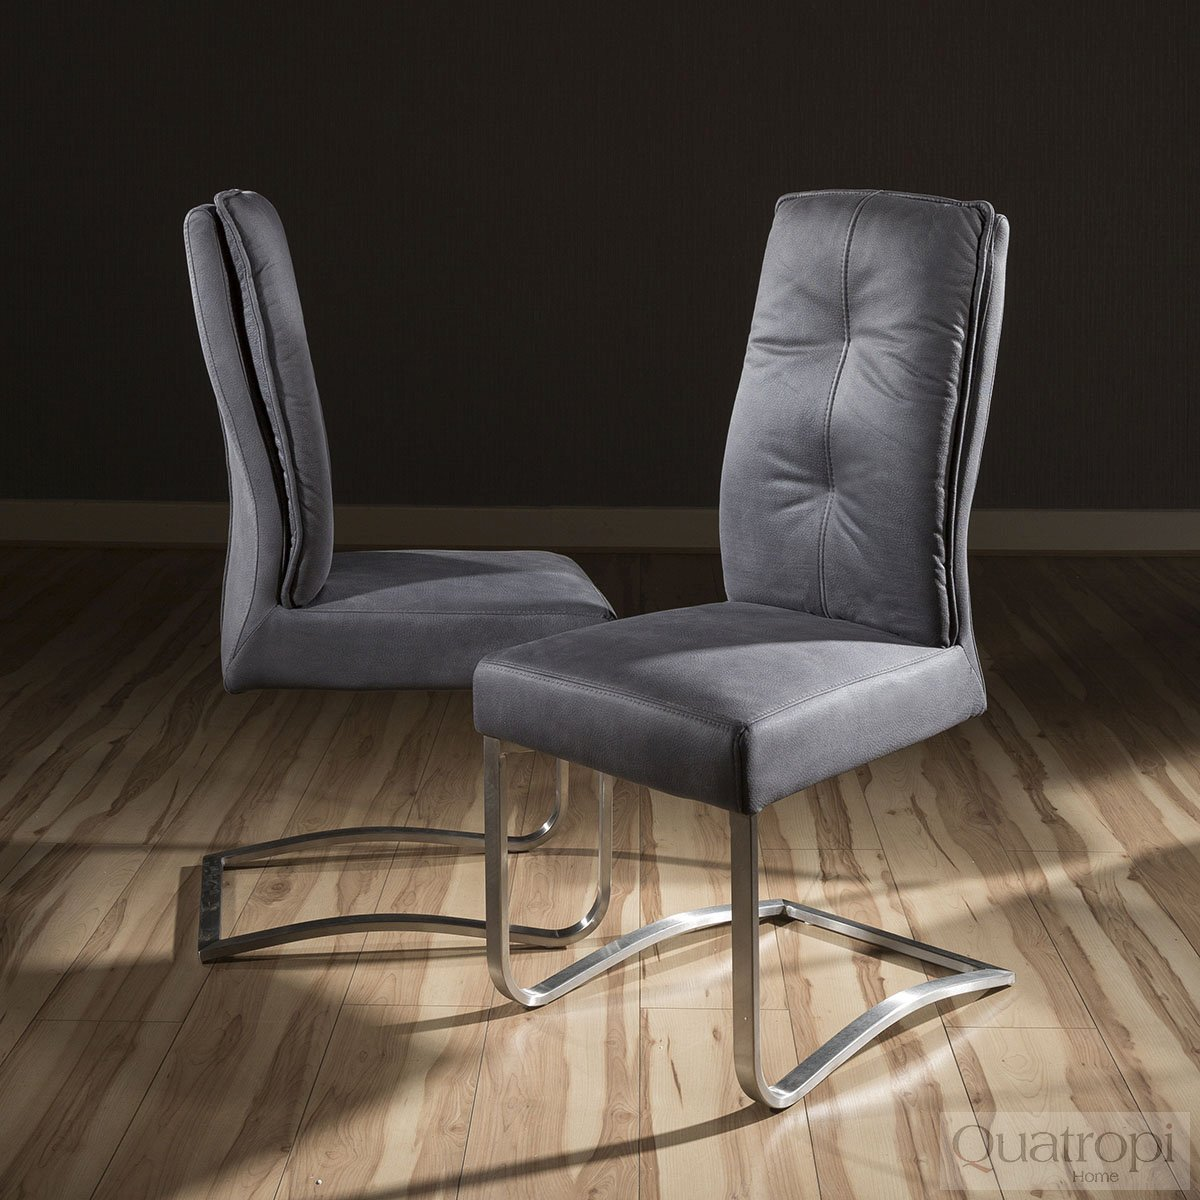 Super Comfy Chair Set Of 2 Large Padded Super Comfy Modern Dining Chairs